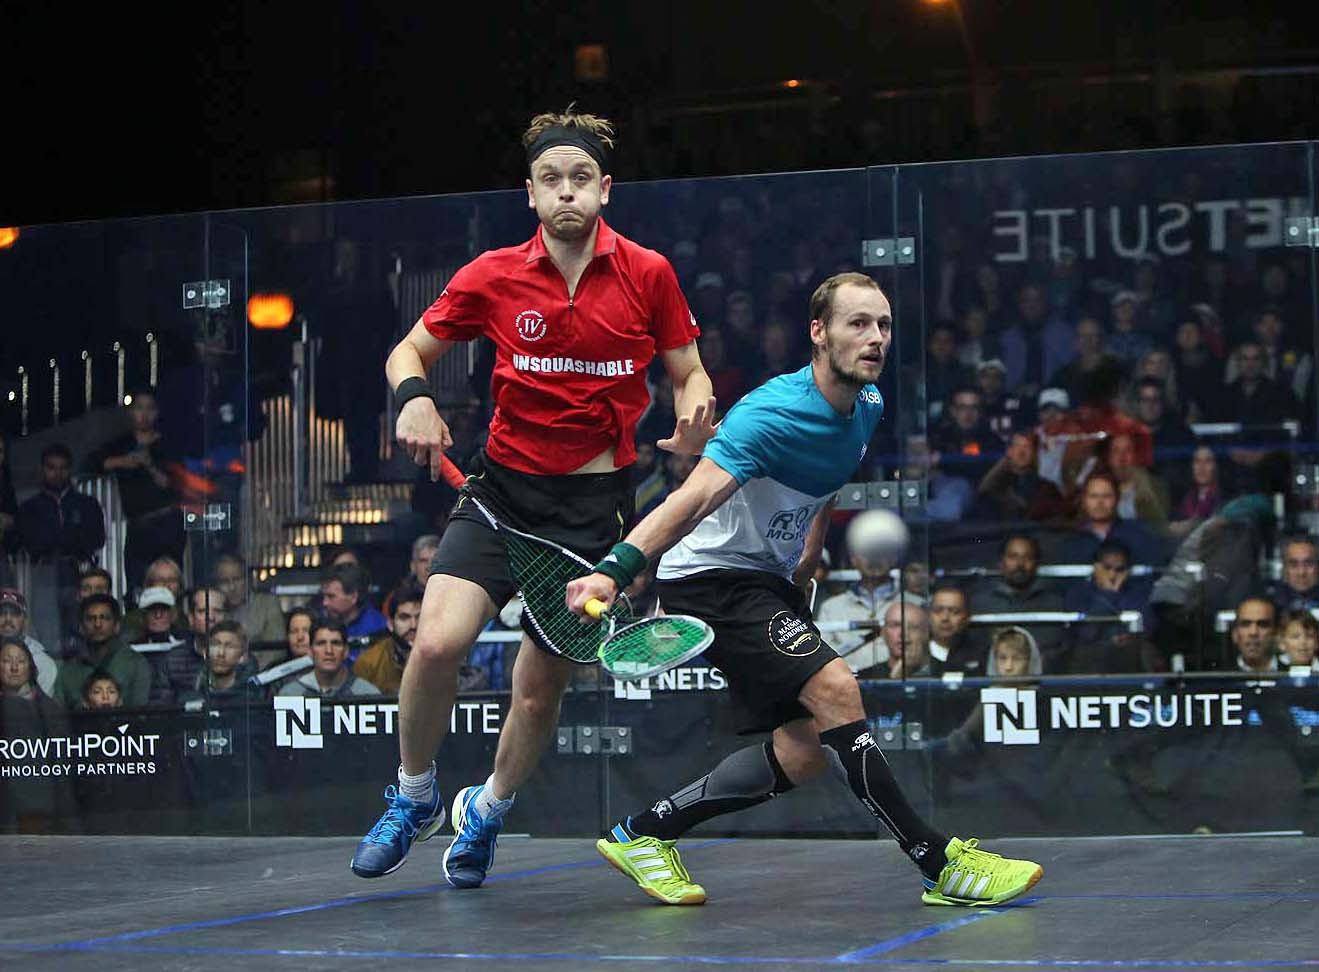 Gregory Gaultier, right, who has had to withdraw from the Oracle NetSuite Open due to an ankle injury ©PSA